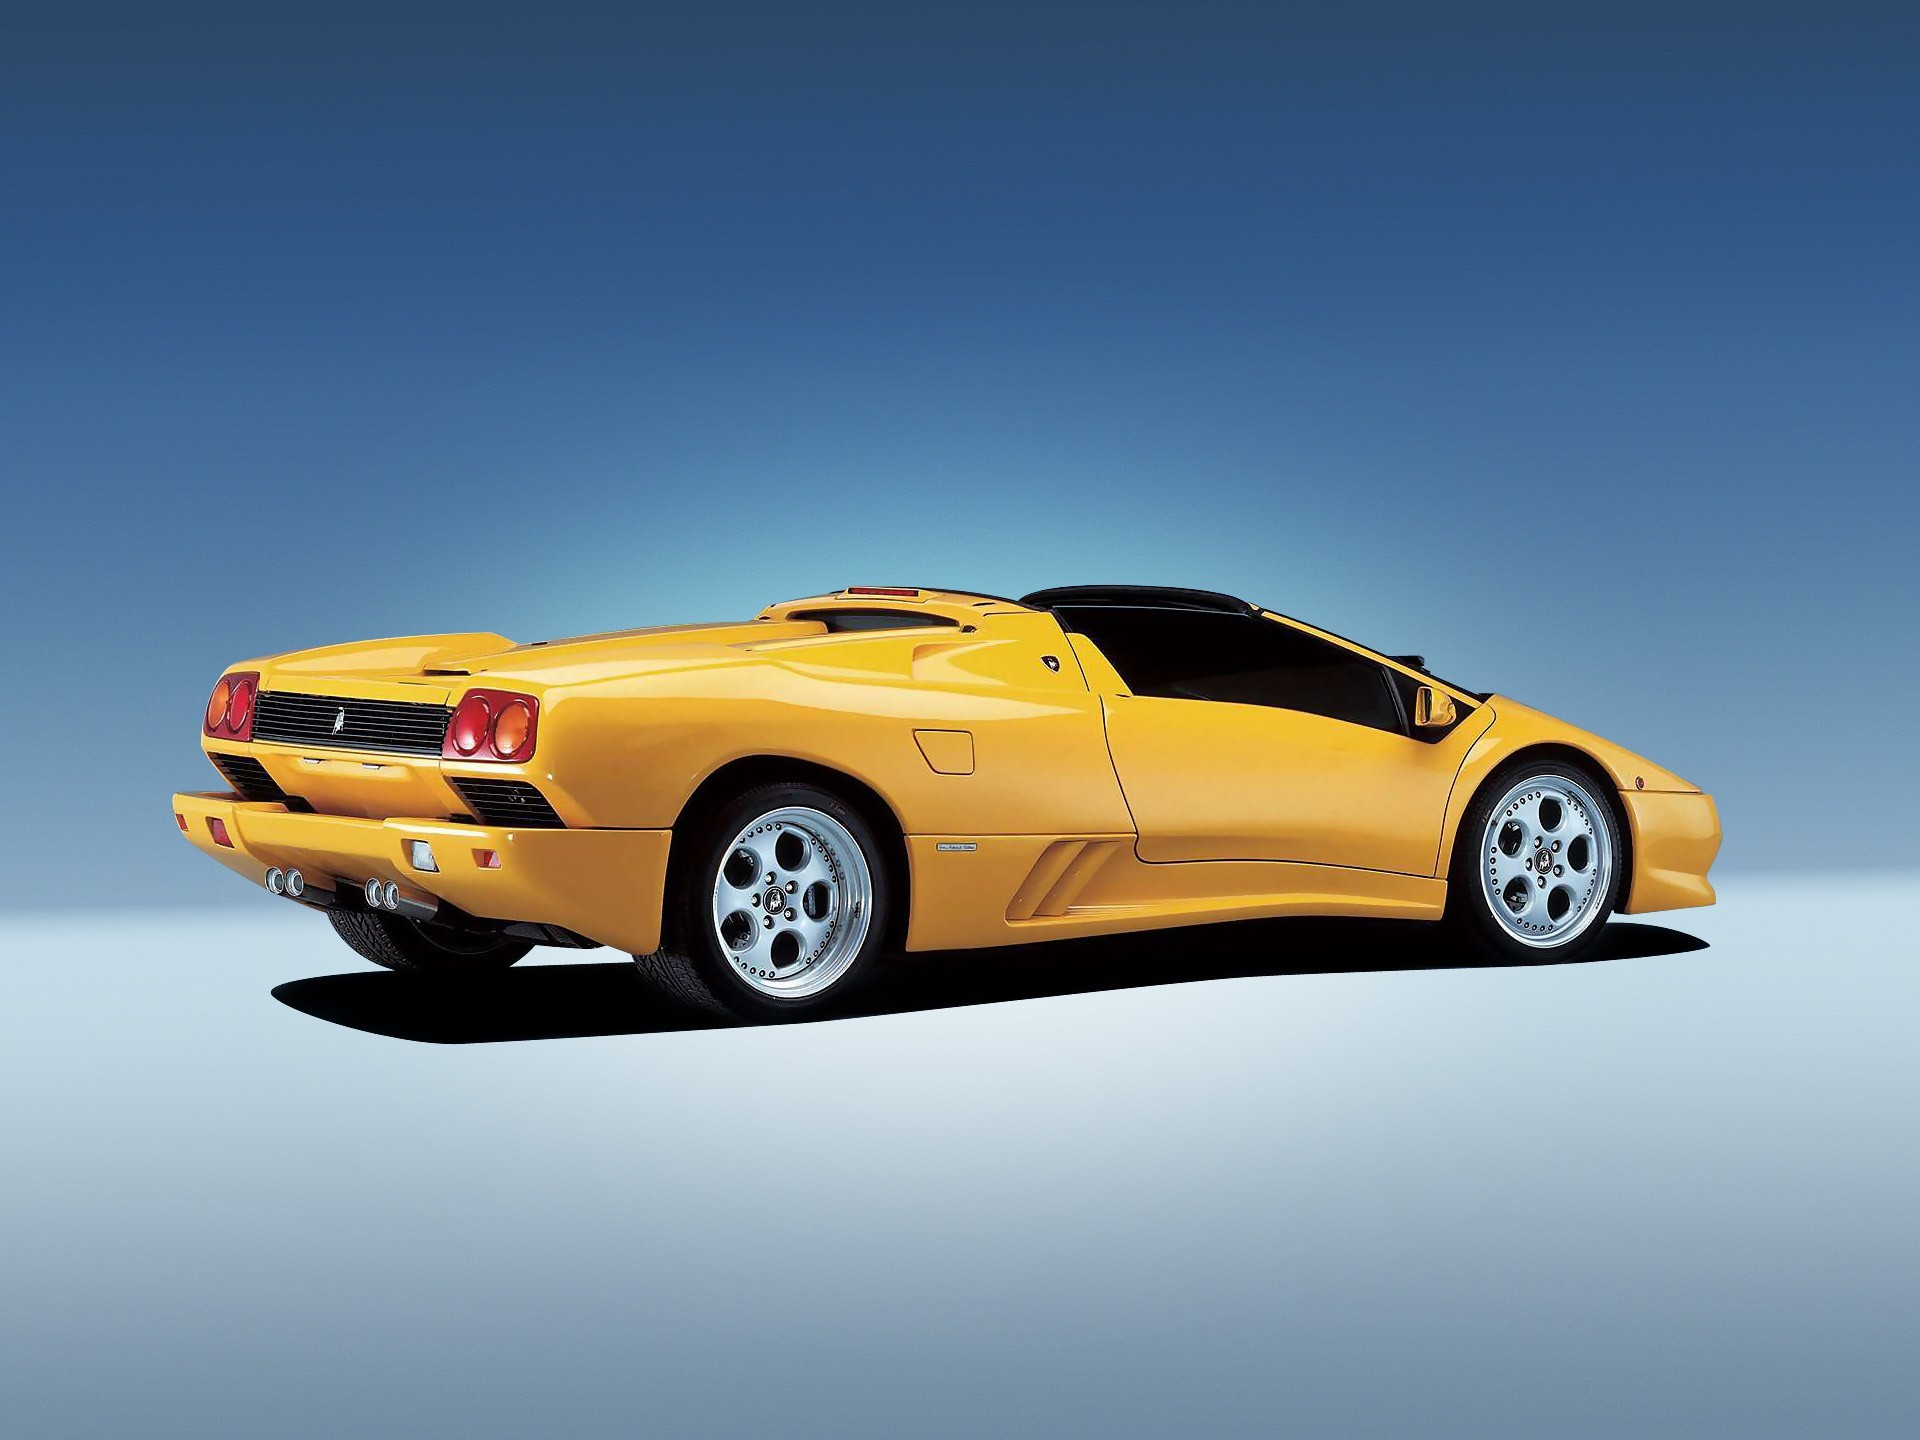 Lamborghini Diablo Roadster 1996 Wallpaper Allwallpaper In 1610